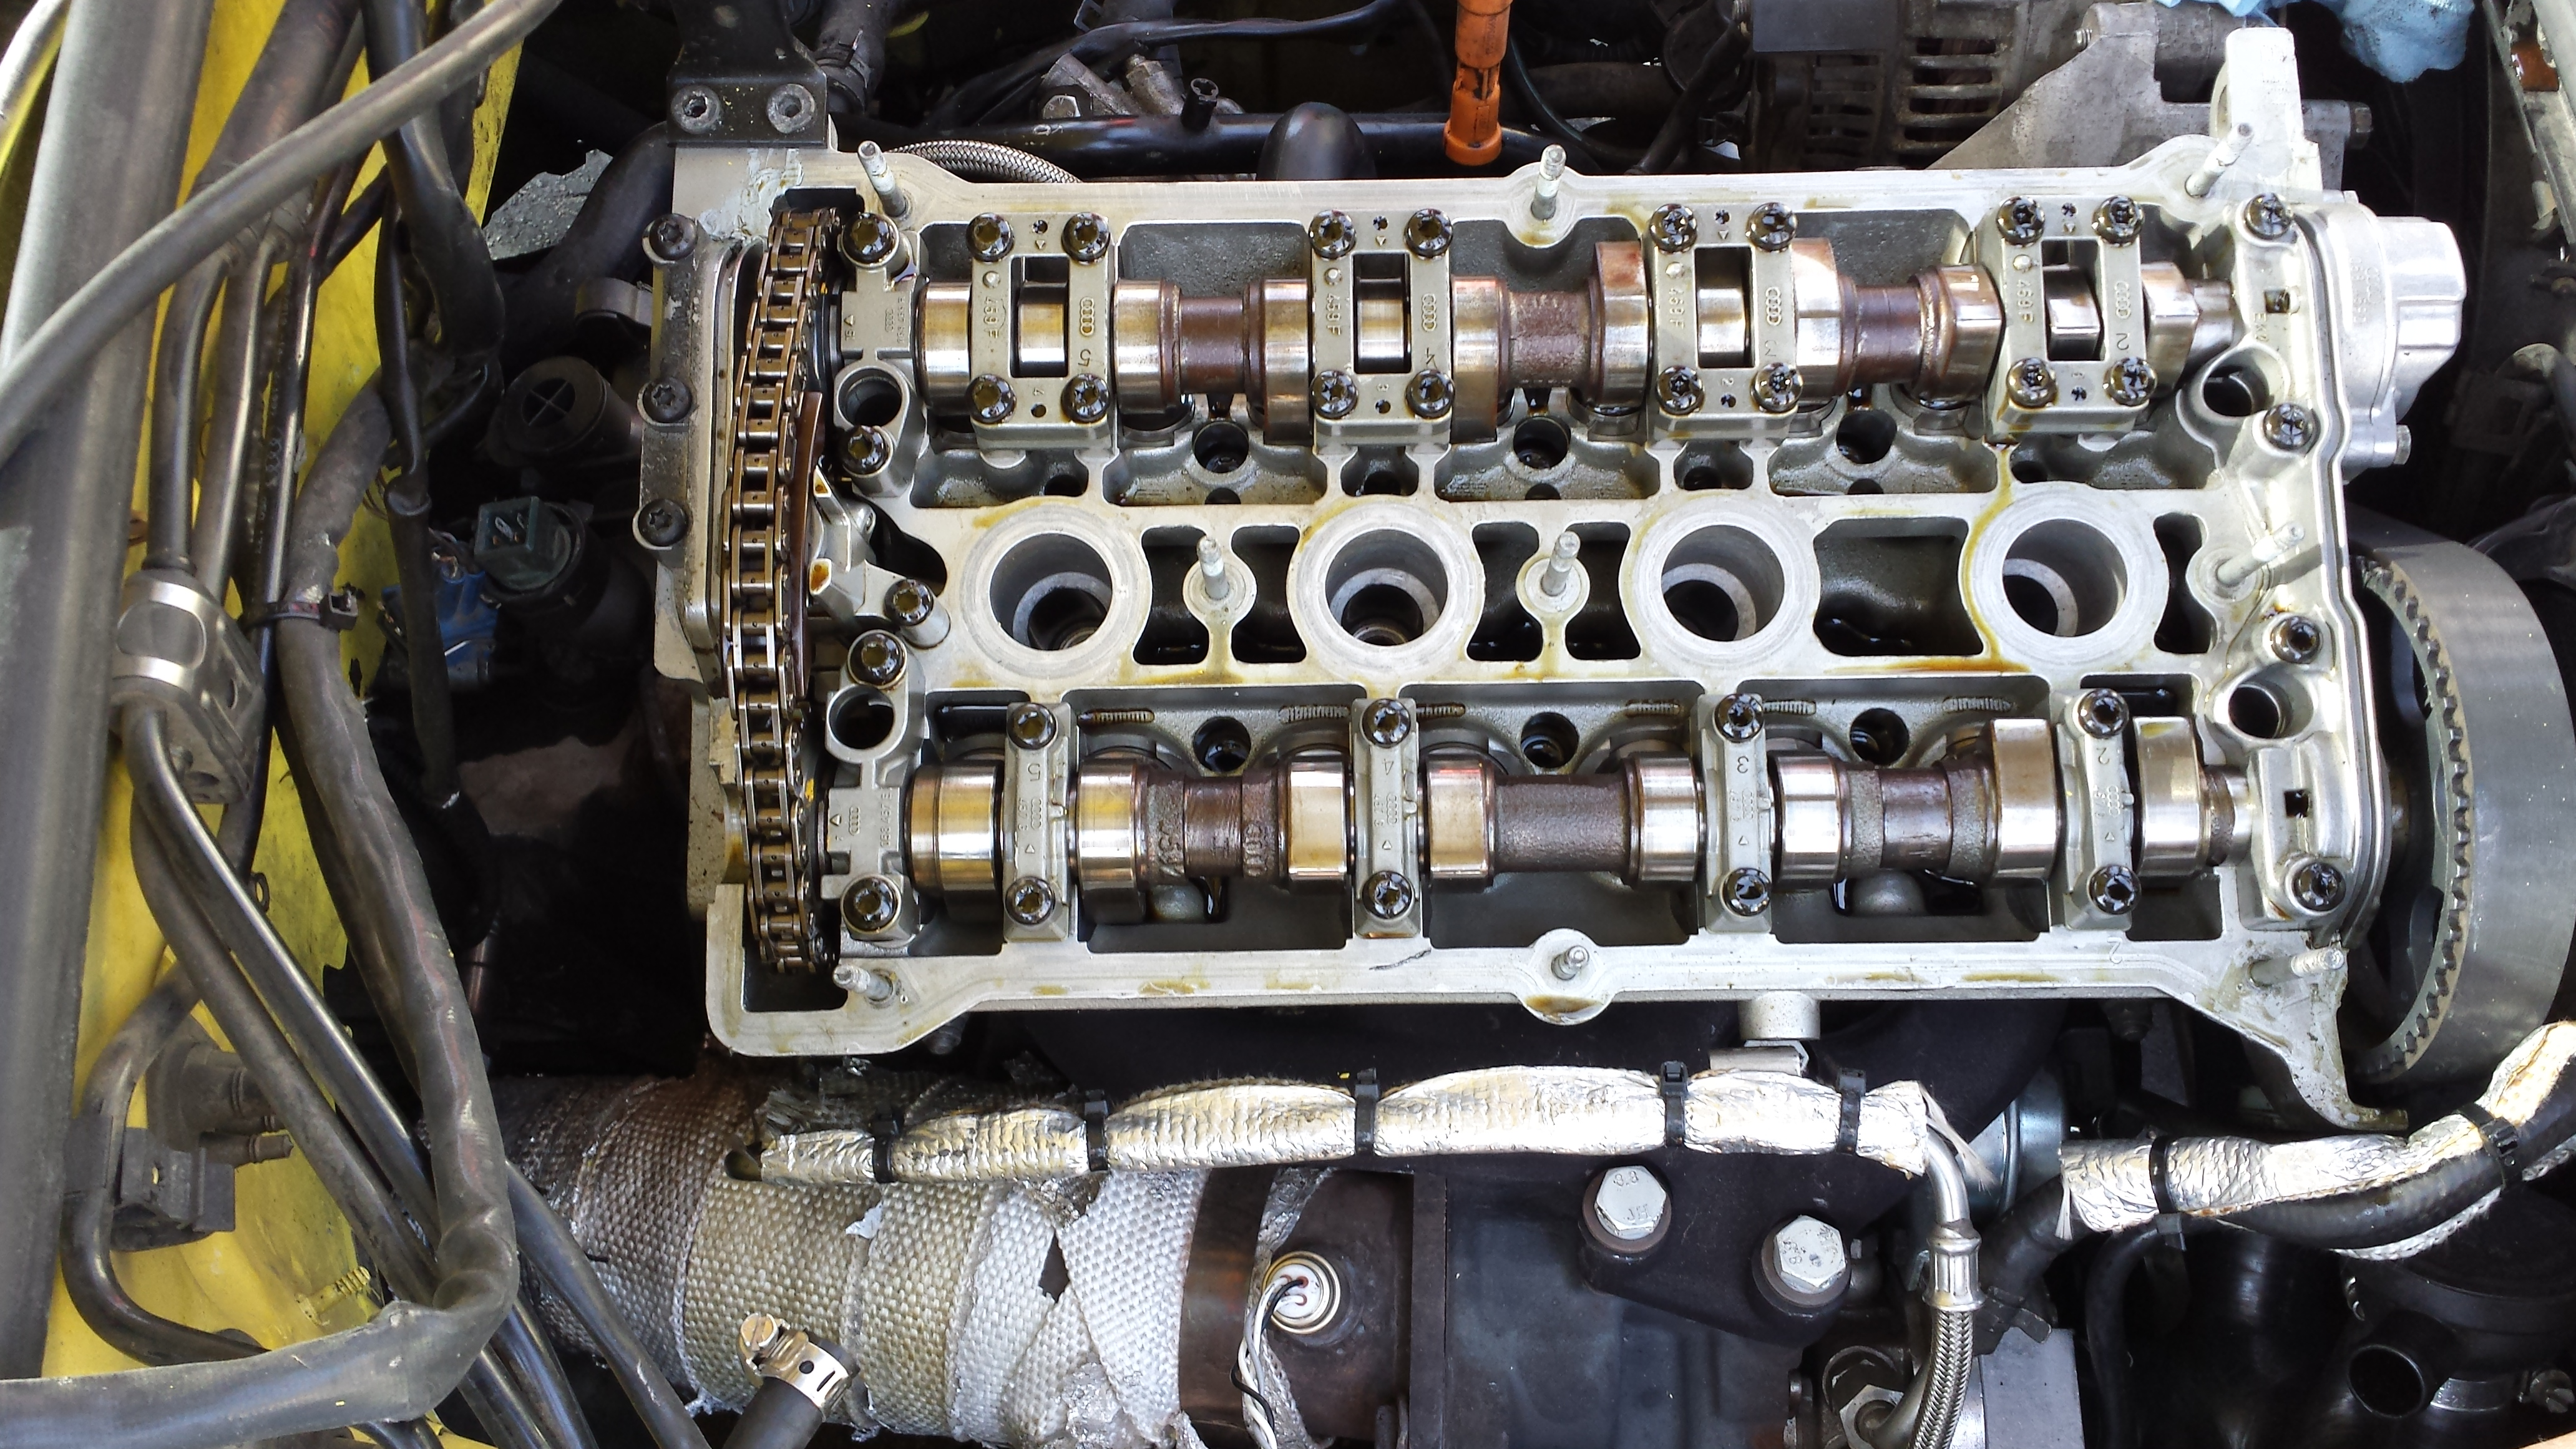 Learning how to take apart the head and change the head gasket on